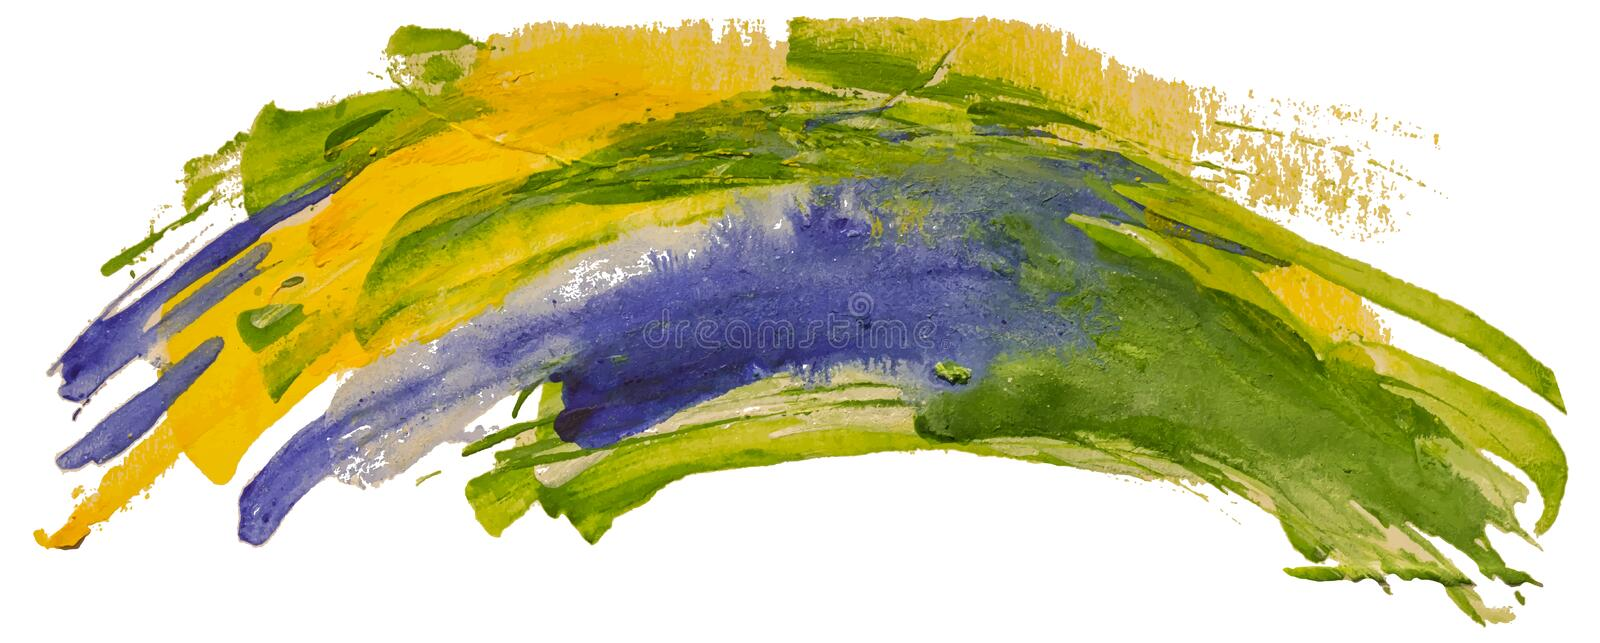 Green, blue and yellow watercolor texture paint stain brush stroke. vector illustration